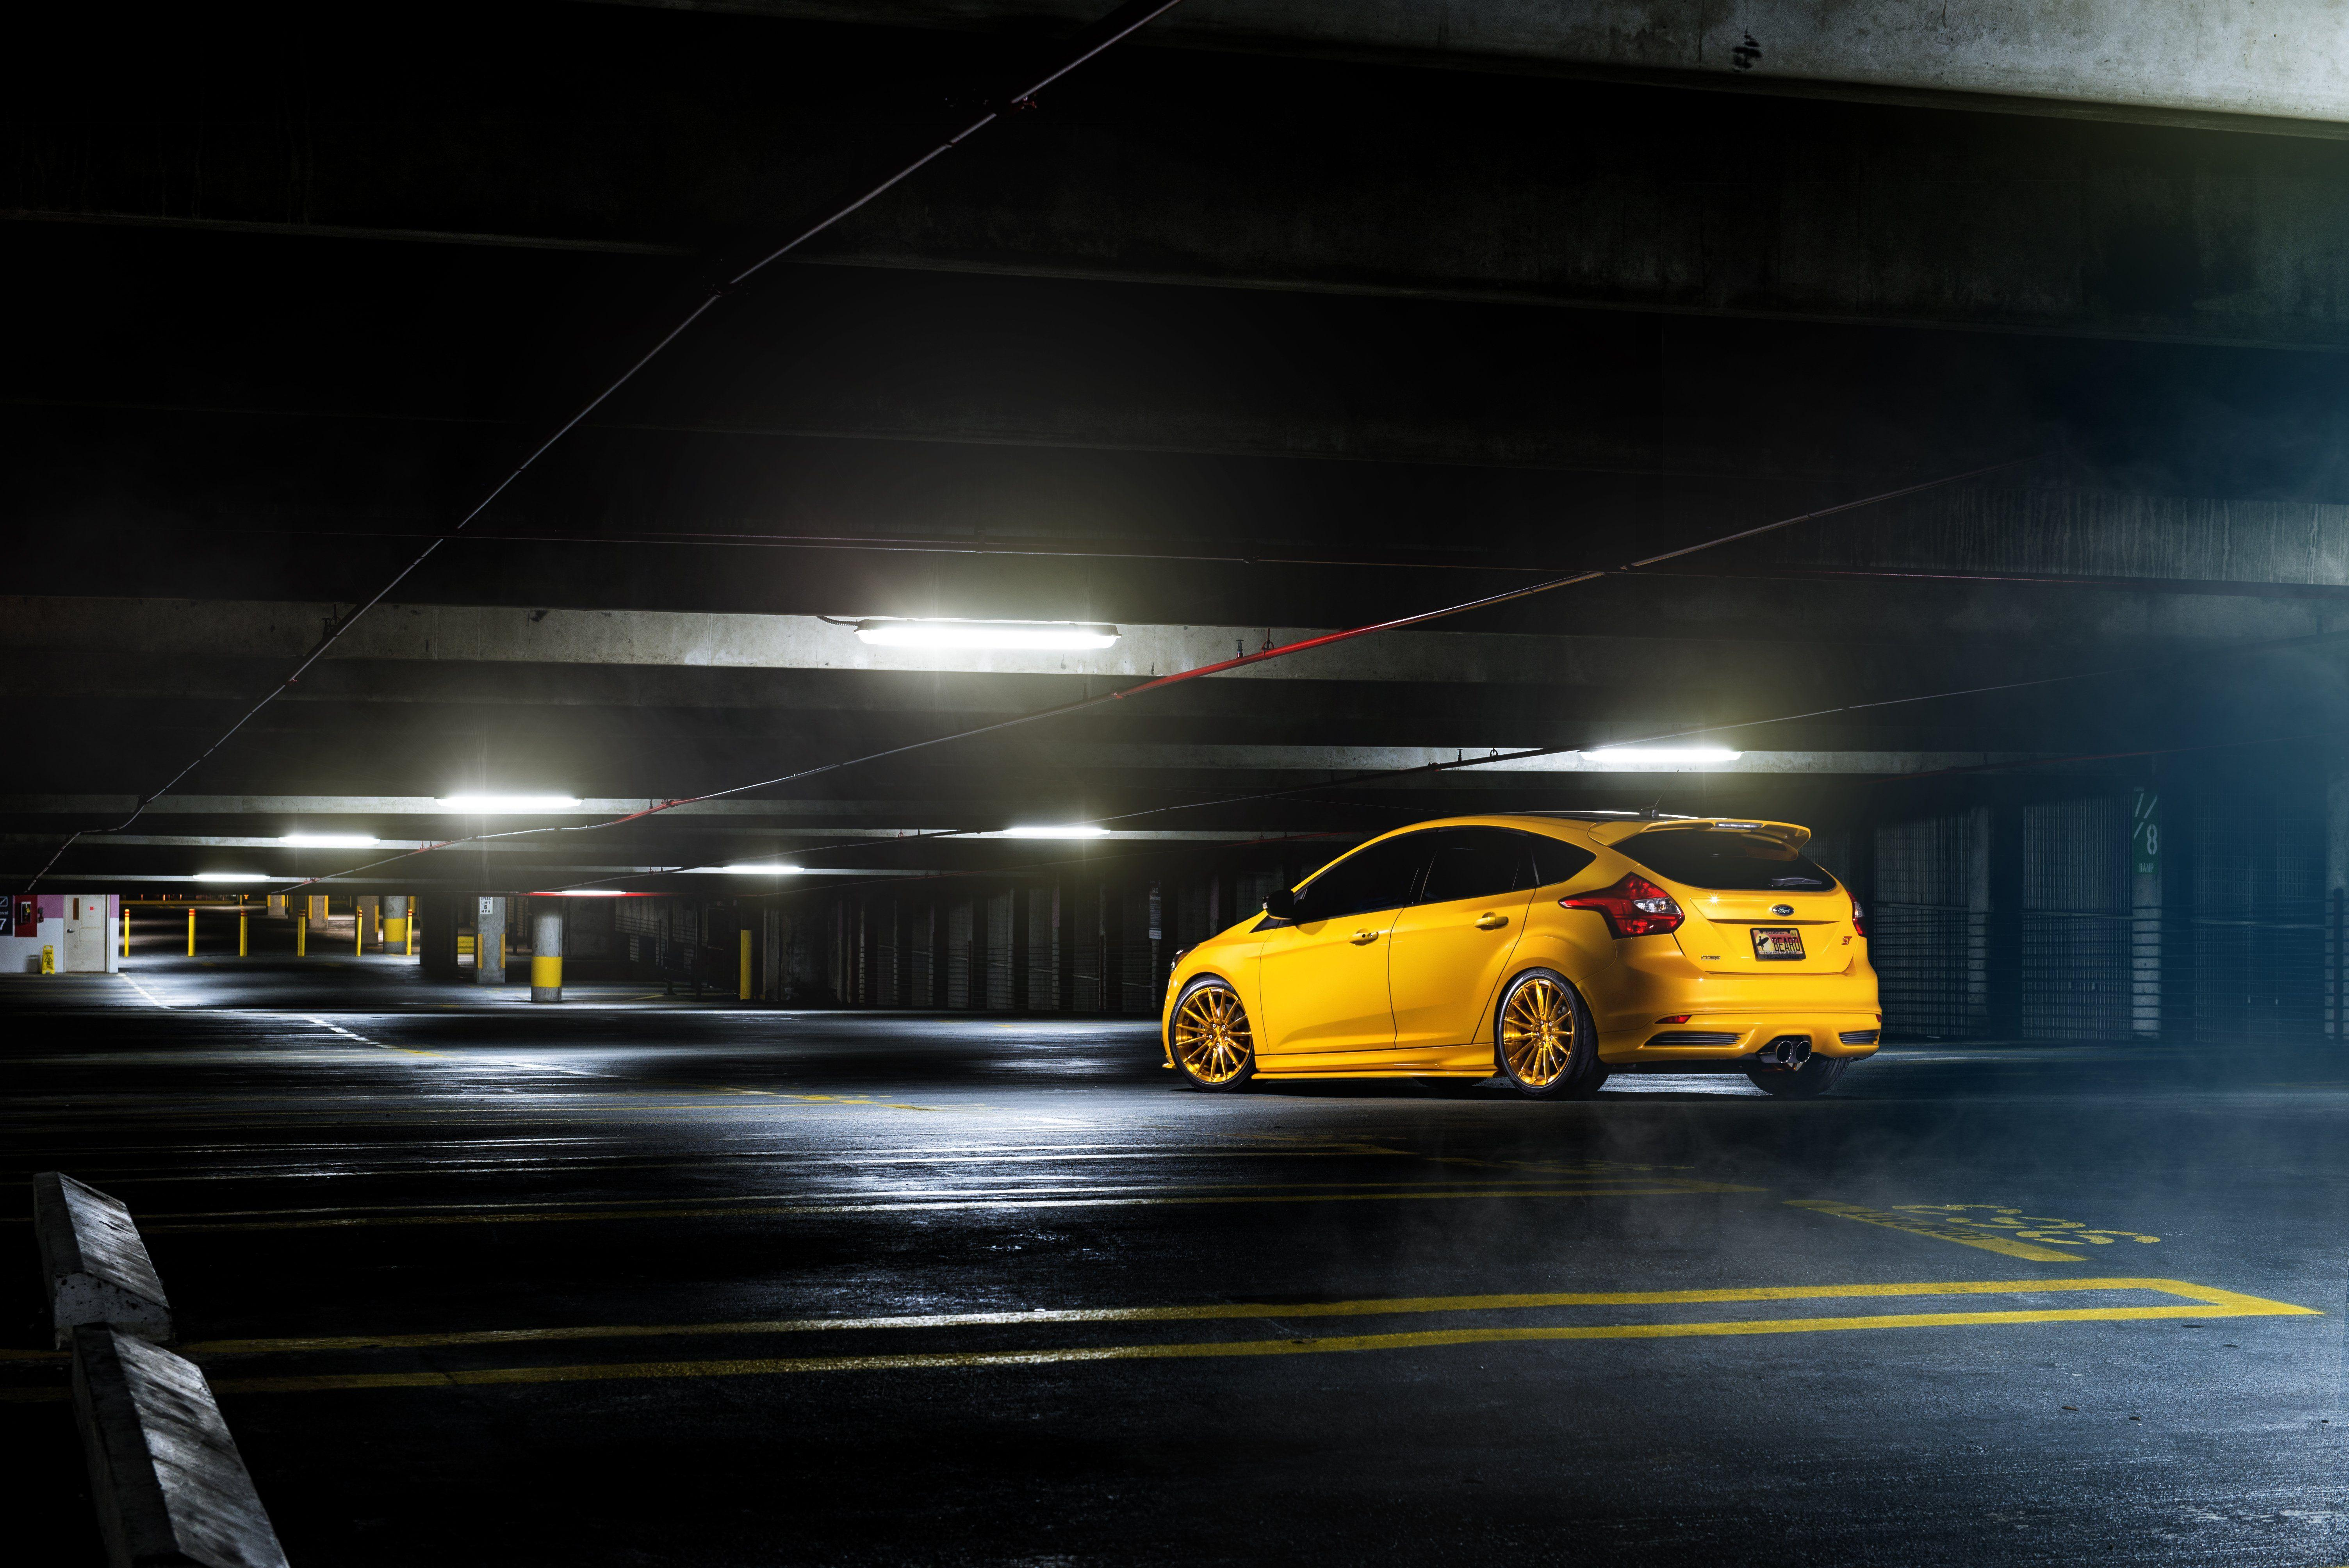 Ford Focus ST HD Wallpapers 500251587, Candela Mousdall